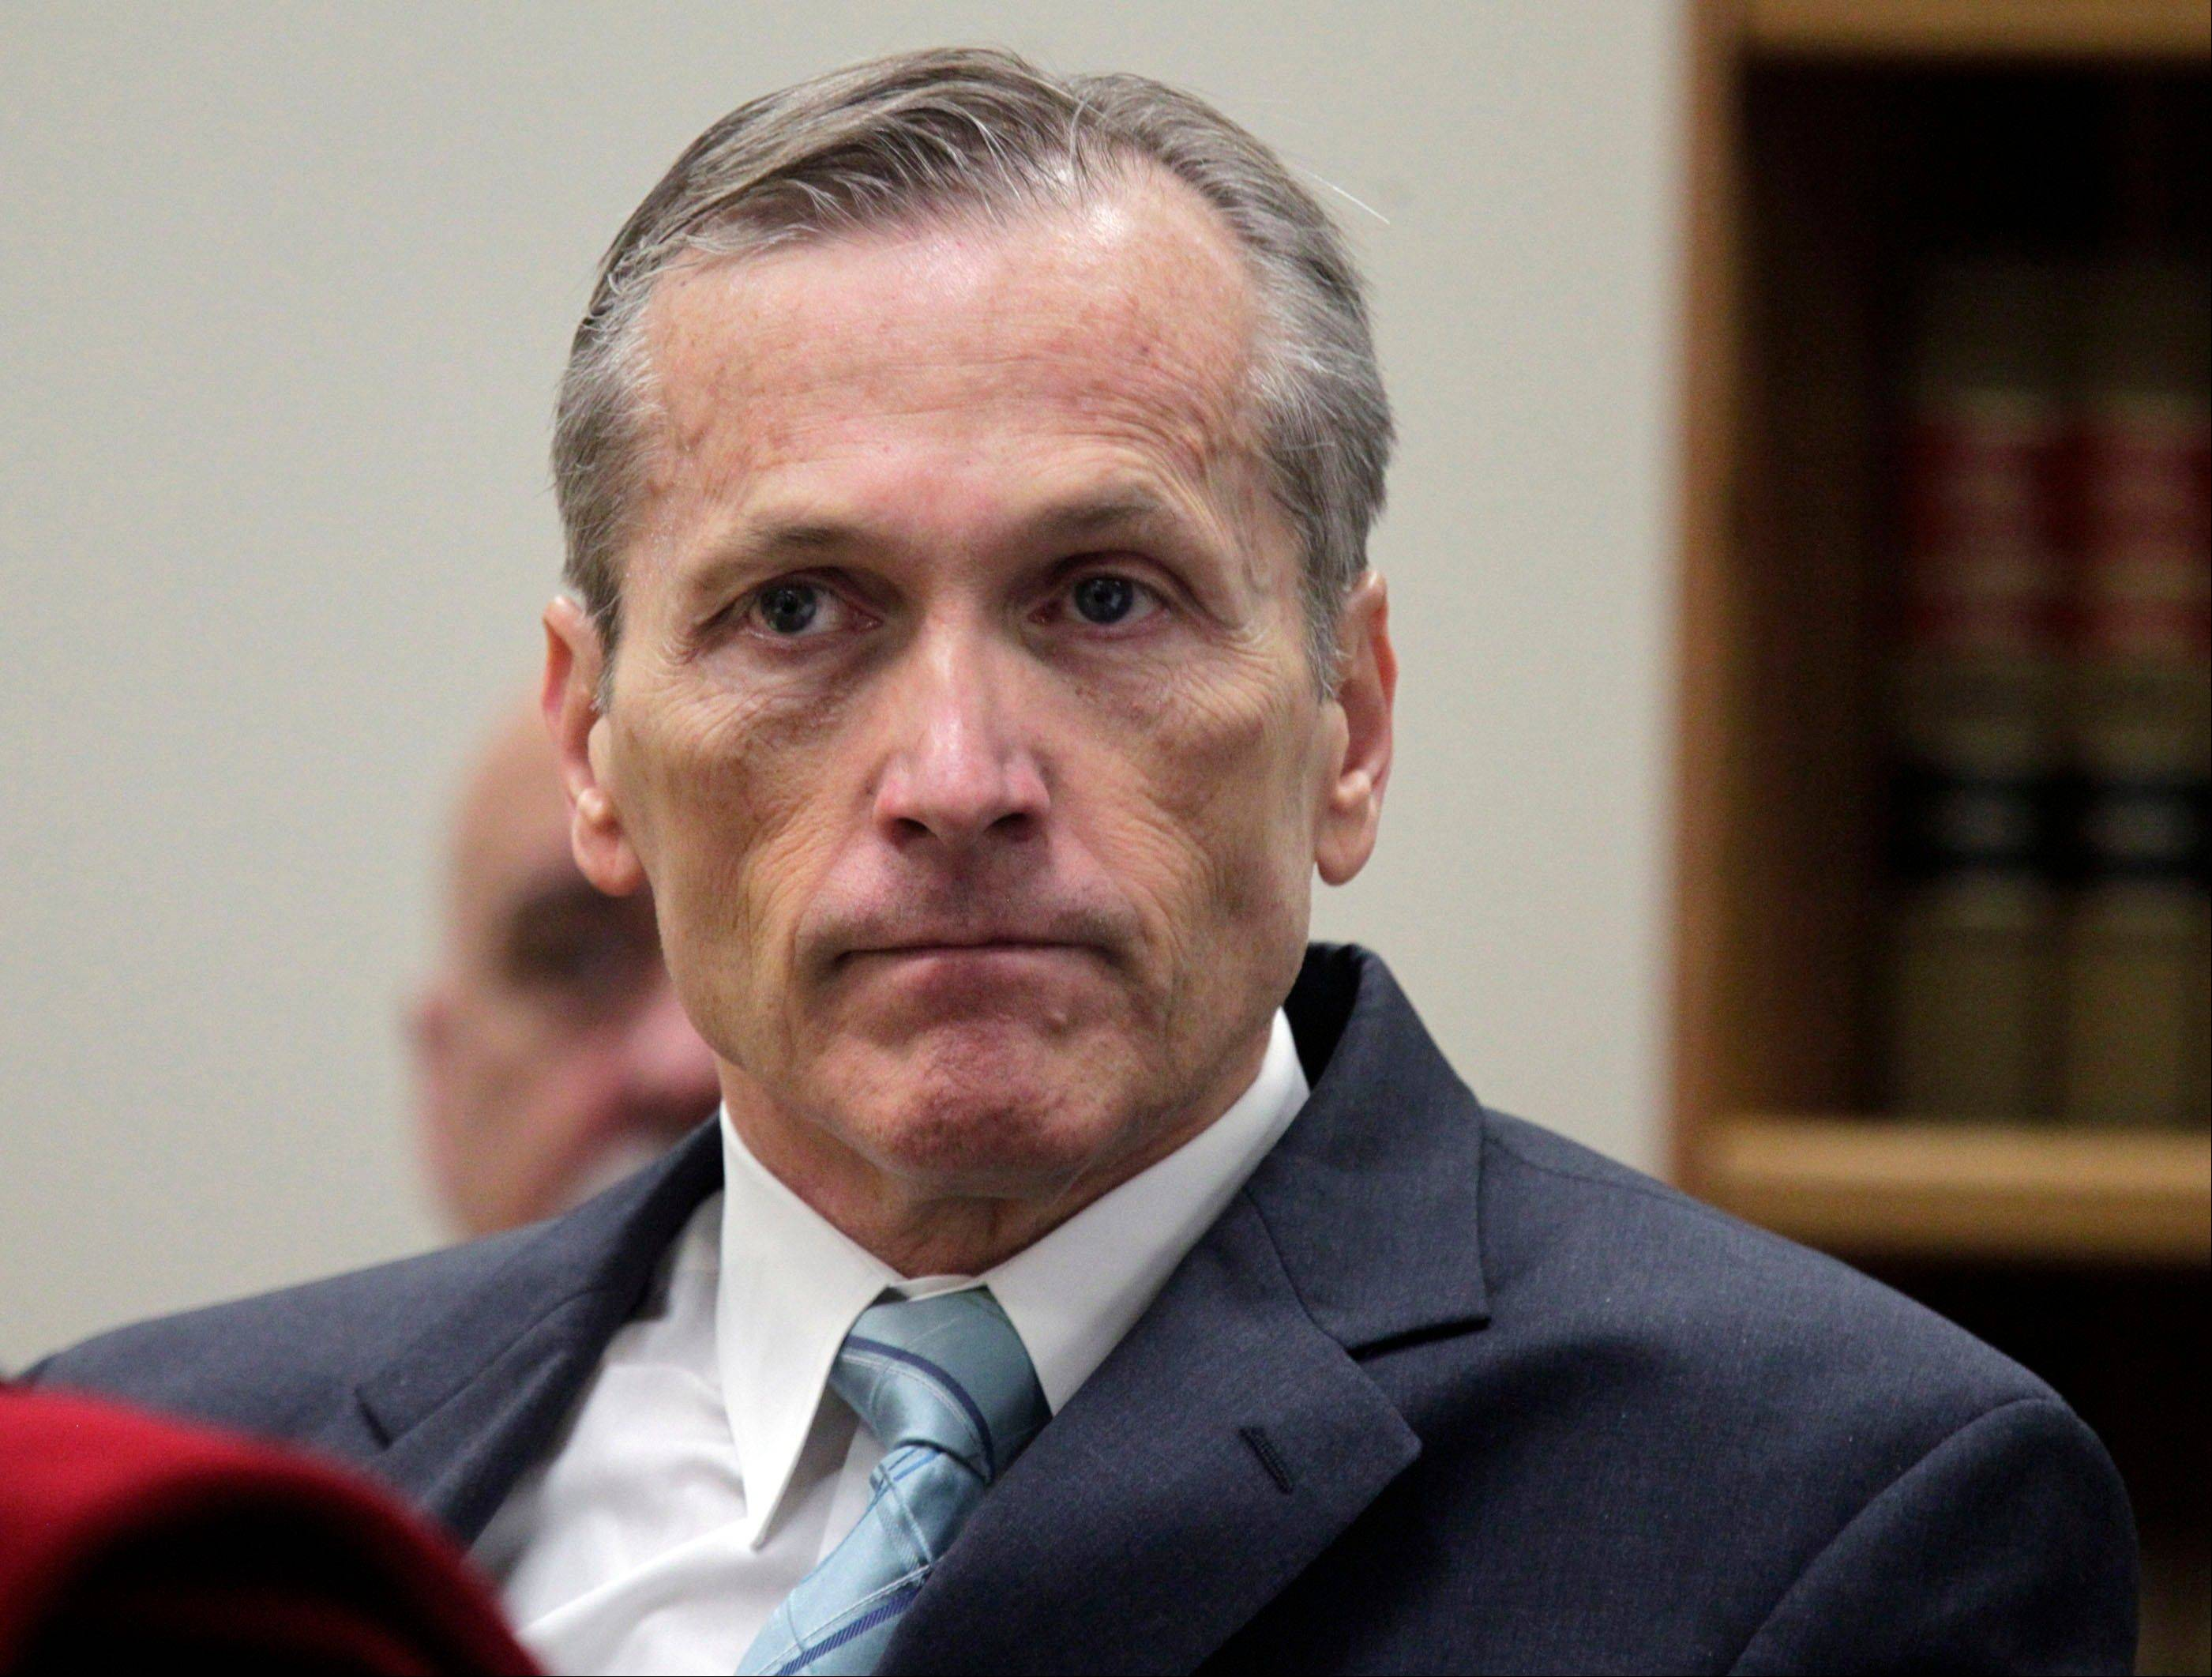 Martin MacNeill, a former doctor, is charged with murder in the 2007 death of his wife. MacNeill, 57, was charged in August 2012, nearly five years after his former beauty queen wife, Michele MacNeill, was found in the bathtub at the couple�s Pleasant Grove home, about 35 miles south of Salt Lake City. Prosecutors said they will try to prove that MacNeill got a plastic surgeon to prescribe a powerful set of neurological drugs for her recovery that left her comatose in the bathtub.